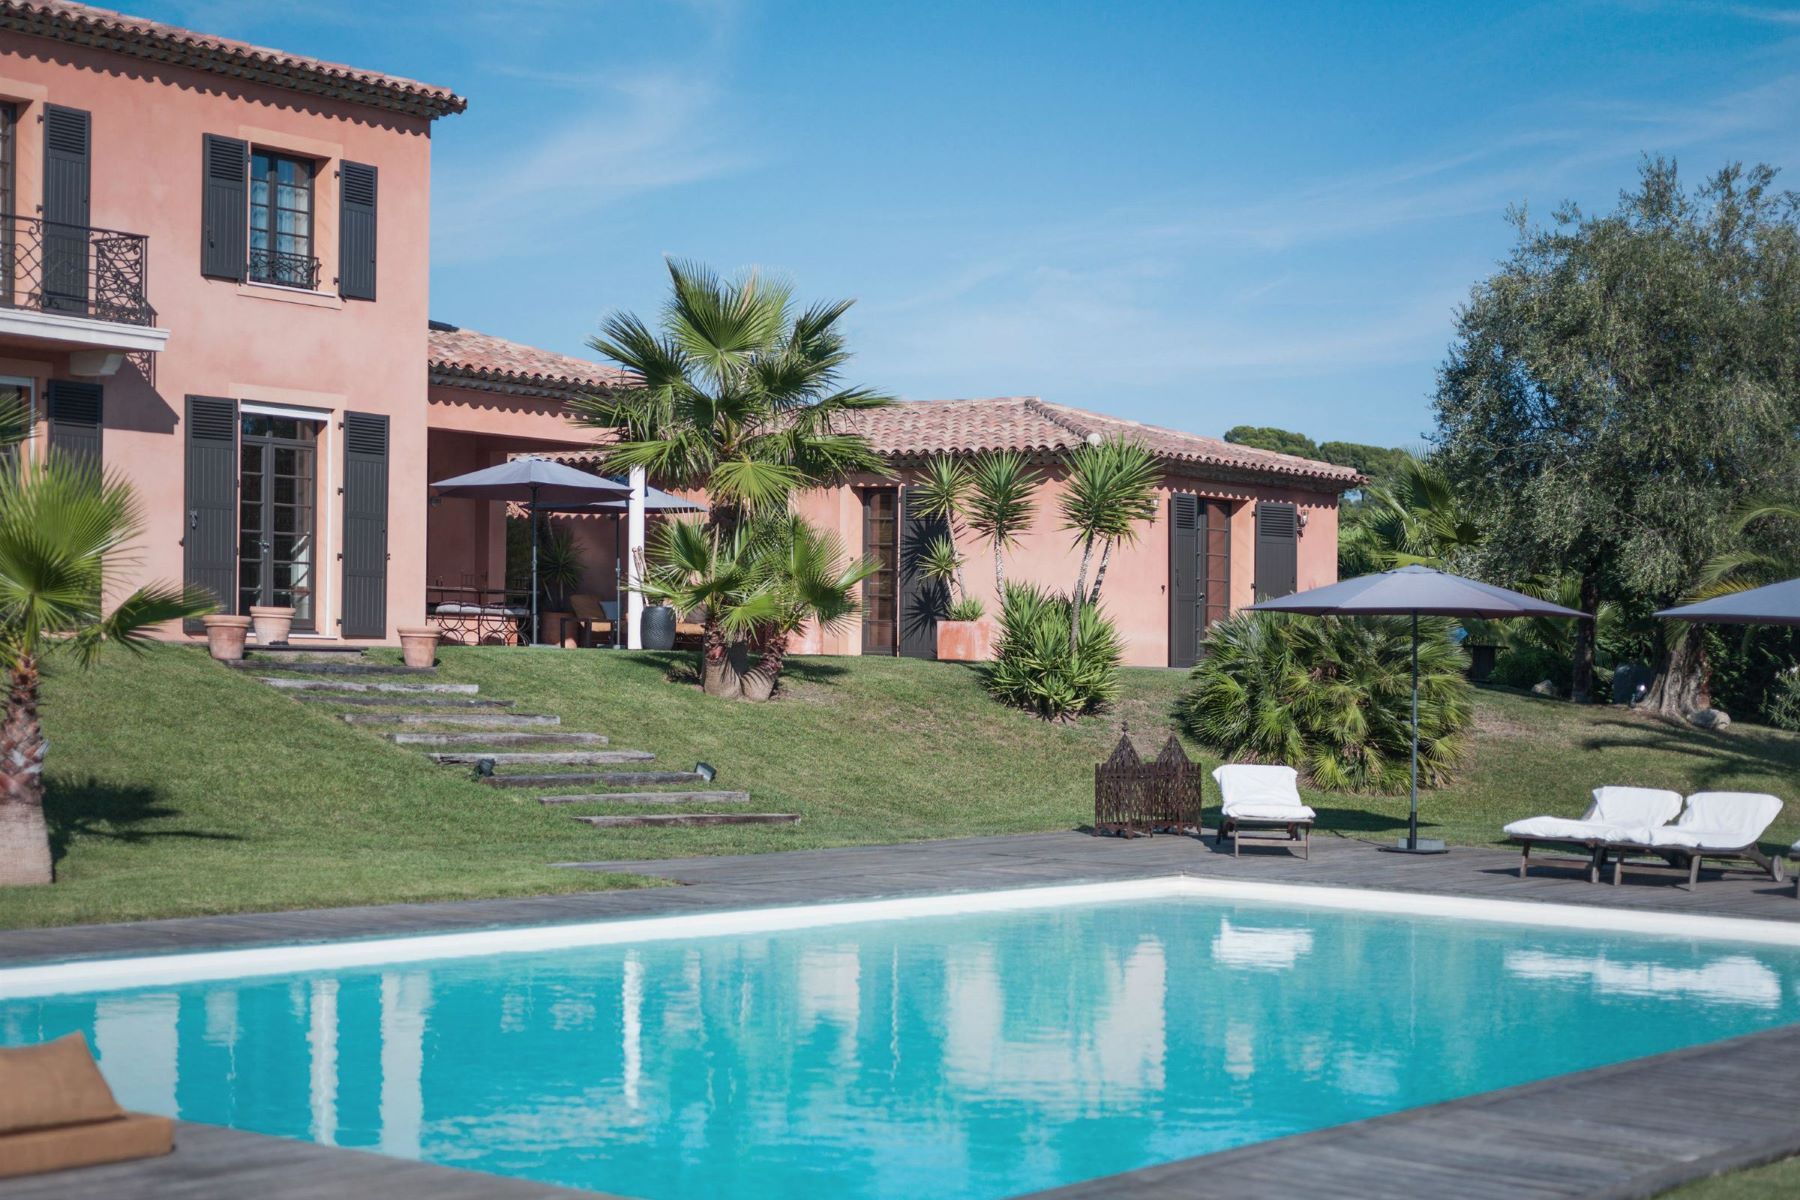 Moradia para Venda às Beautiful Family Home Mougins, Provença-Alpes-Costa Azul, 06250 França